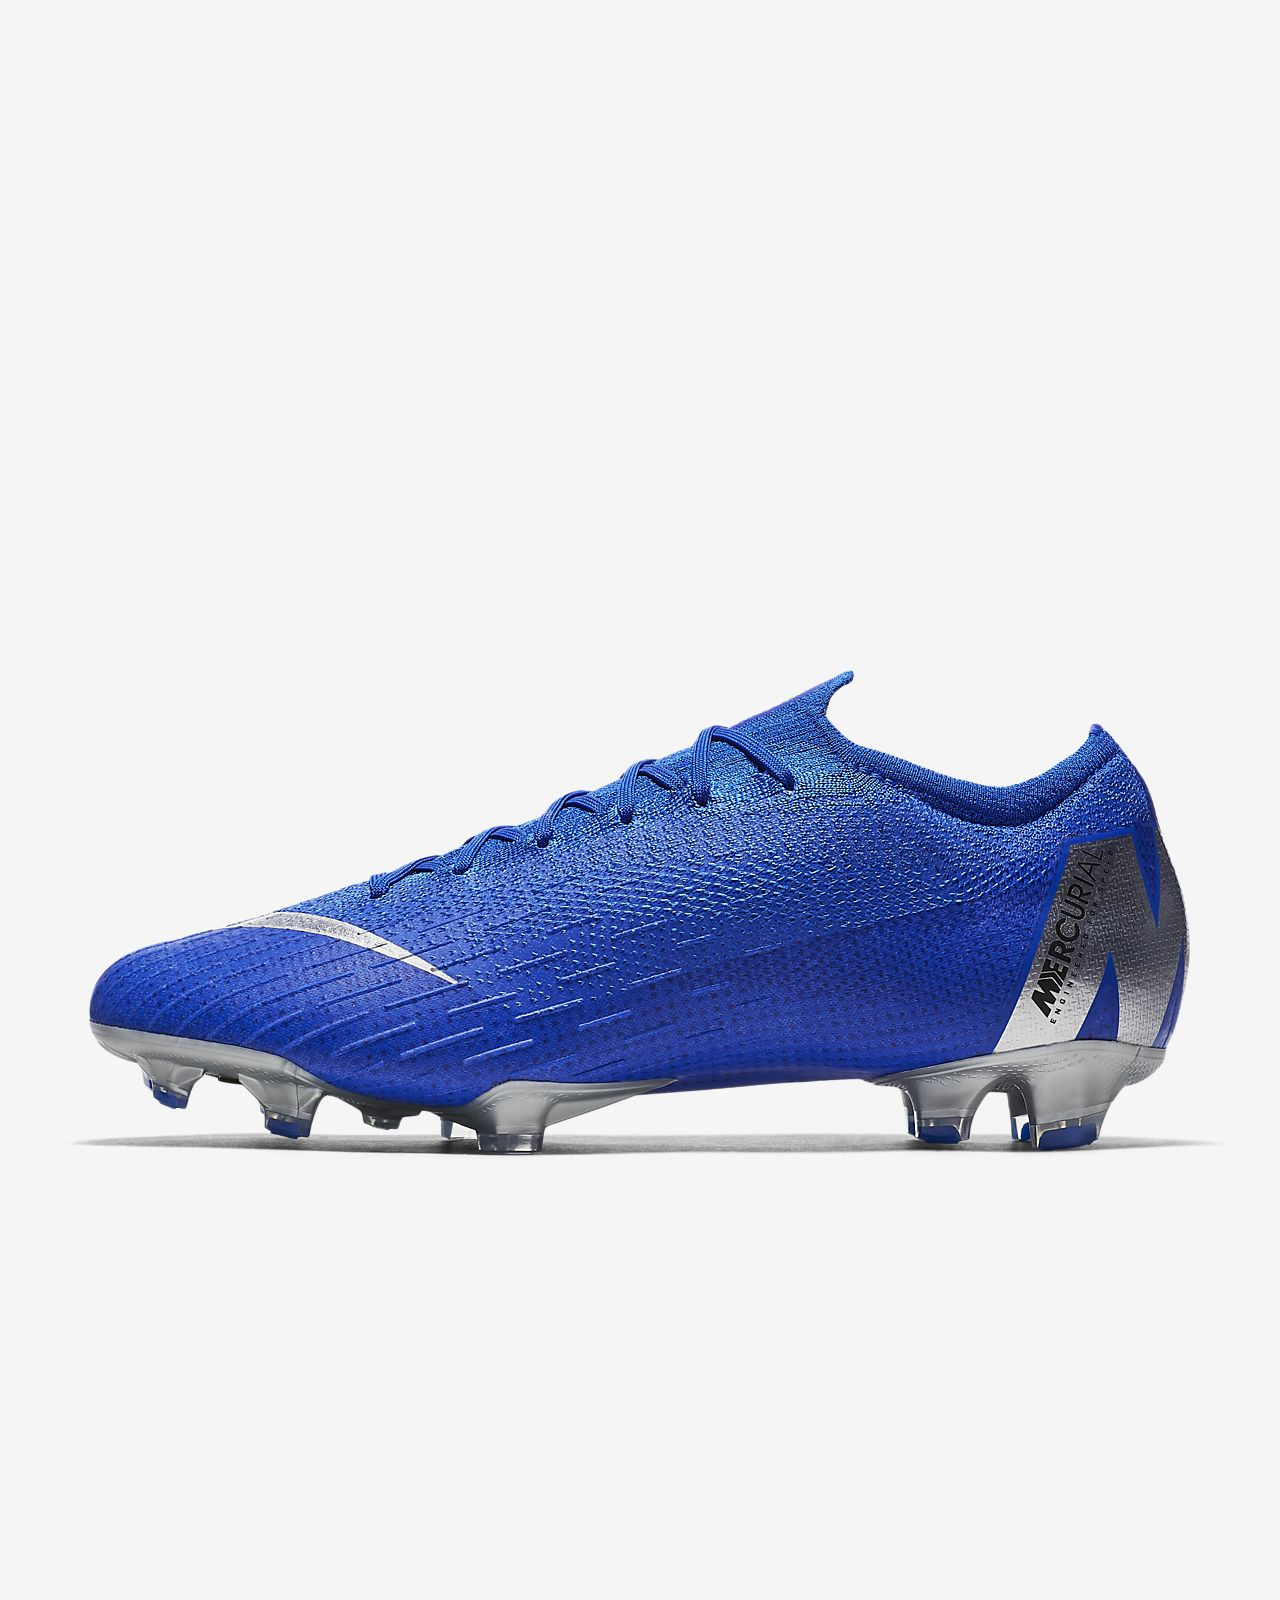 quality design 27db7 9fc36 ... Nike Vapor 12 Elite FG Firm-Ground Football Boot